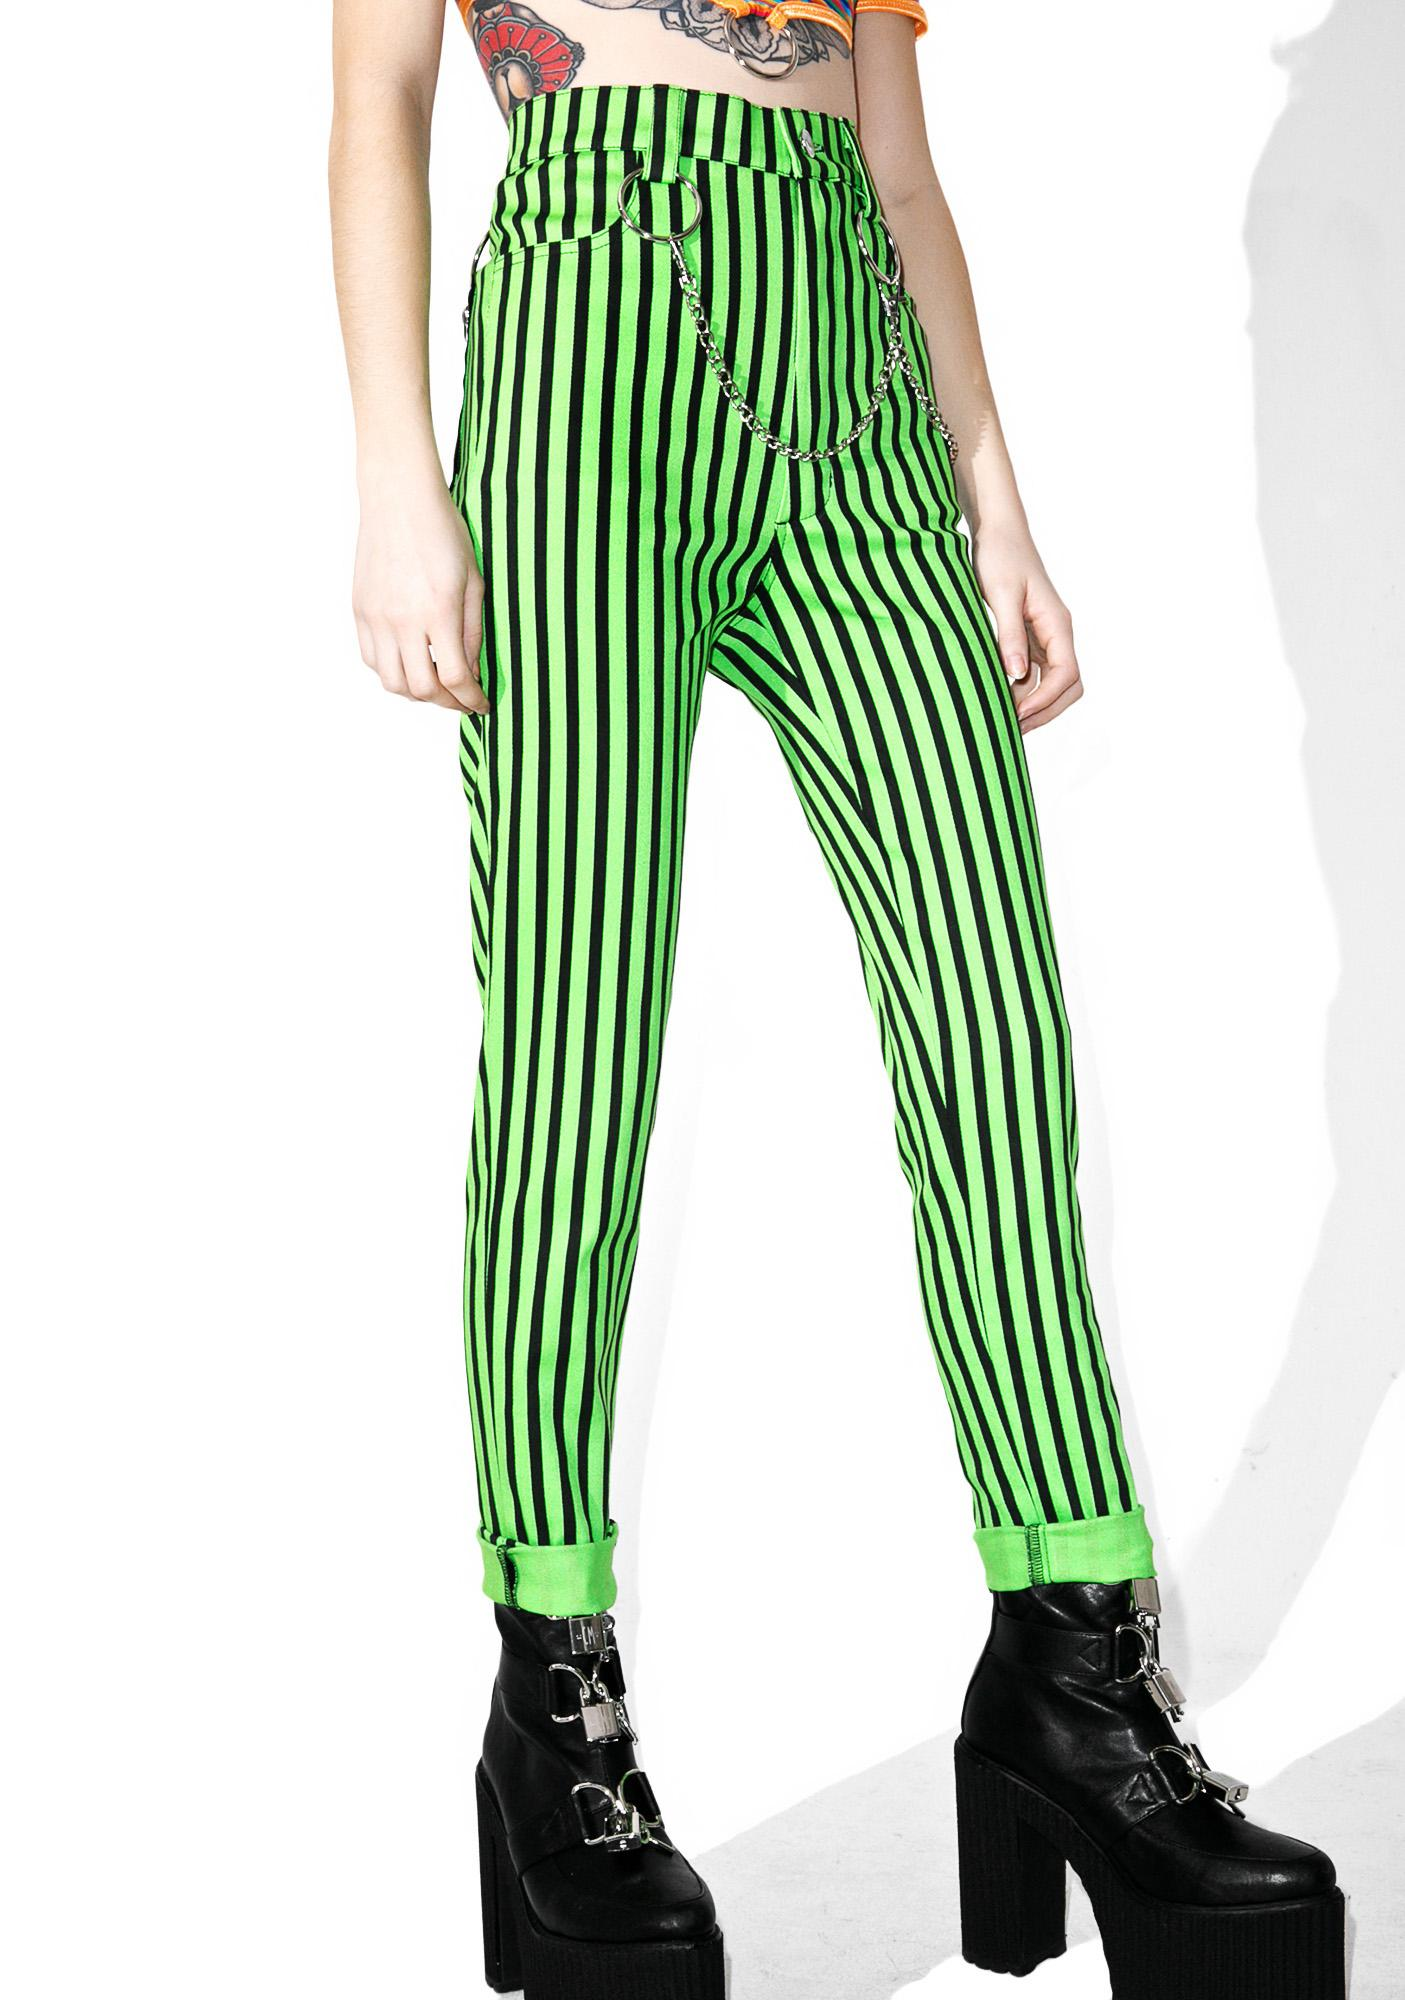 95910e48c Indyanna Beetlejuice Pants | Dolls Kill